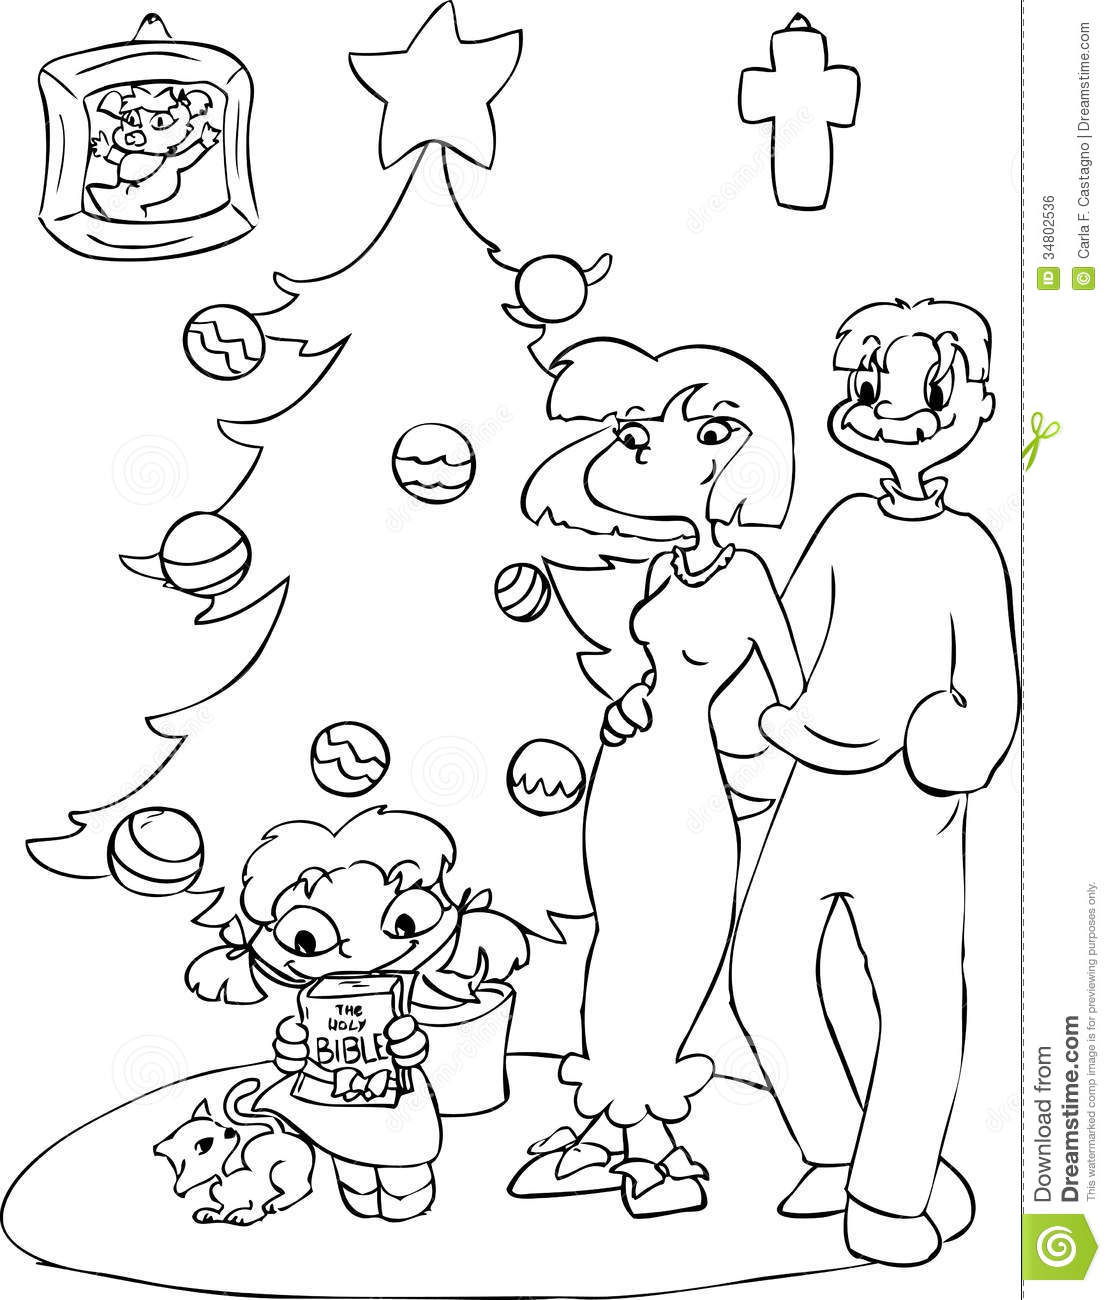 little girl coloring pages not copyrighted | Family With Christmas Tree Coloring Stock Vector ...